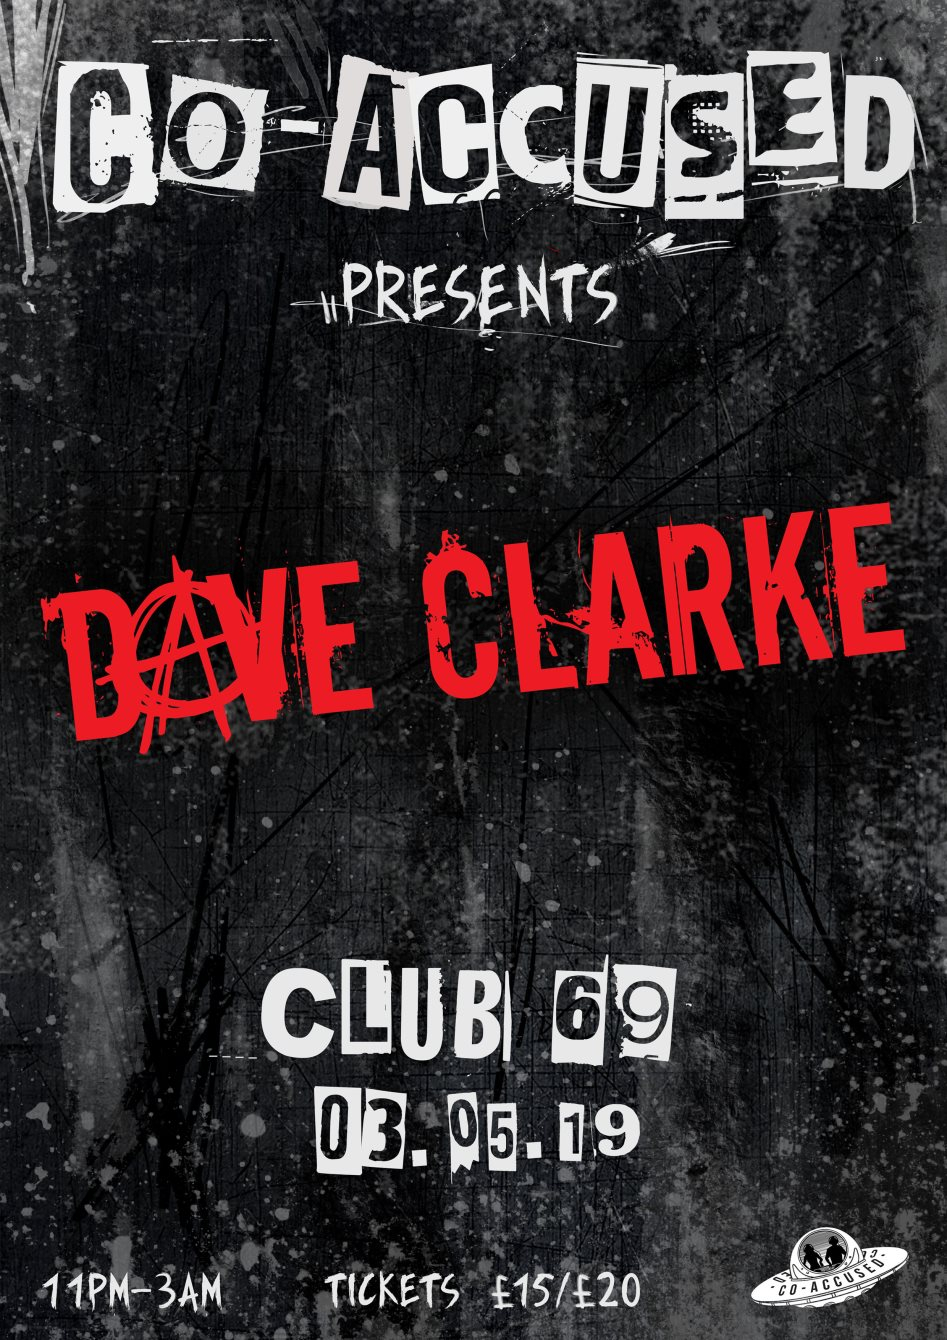 Co-Accused with Dave Clarke - Flyer front